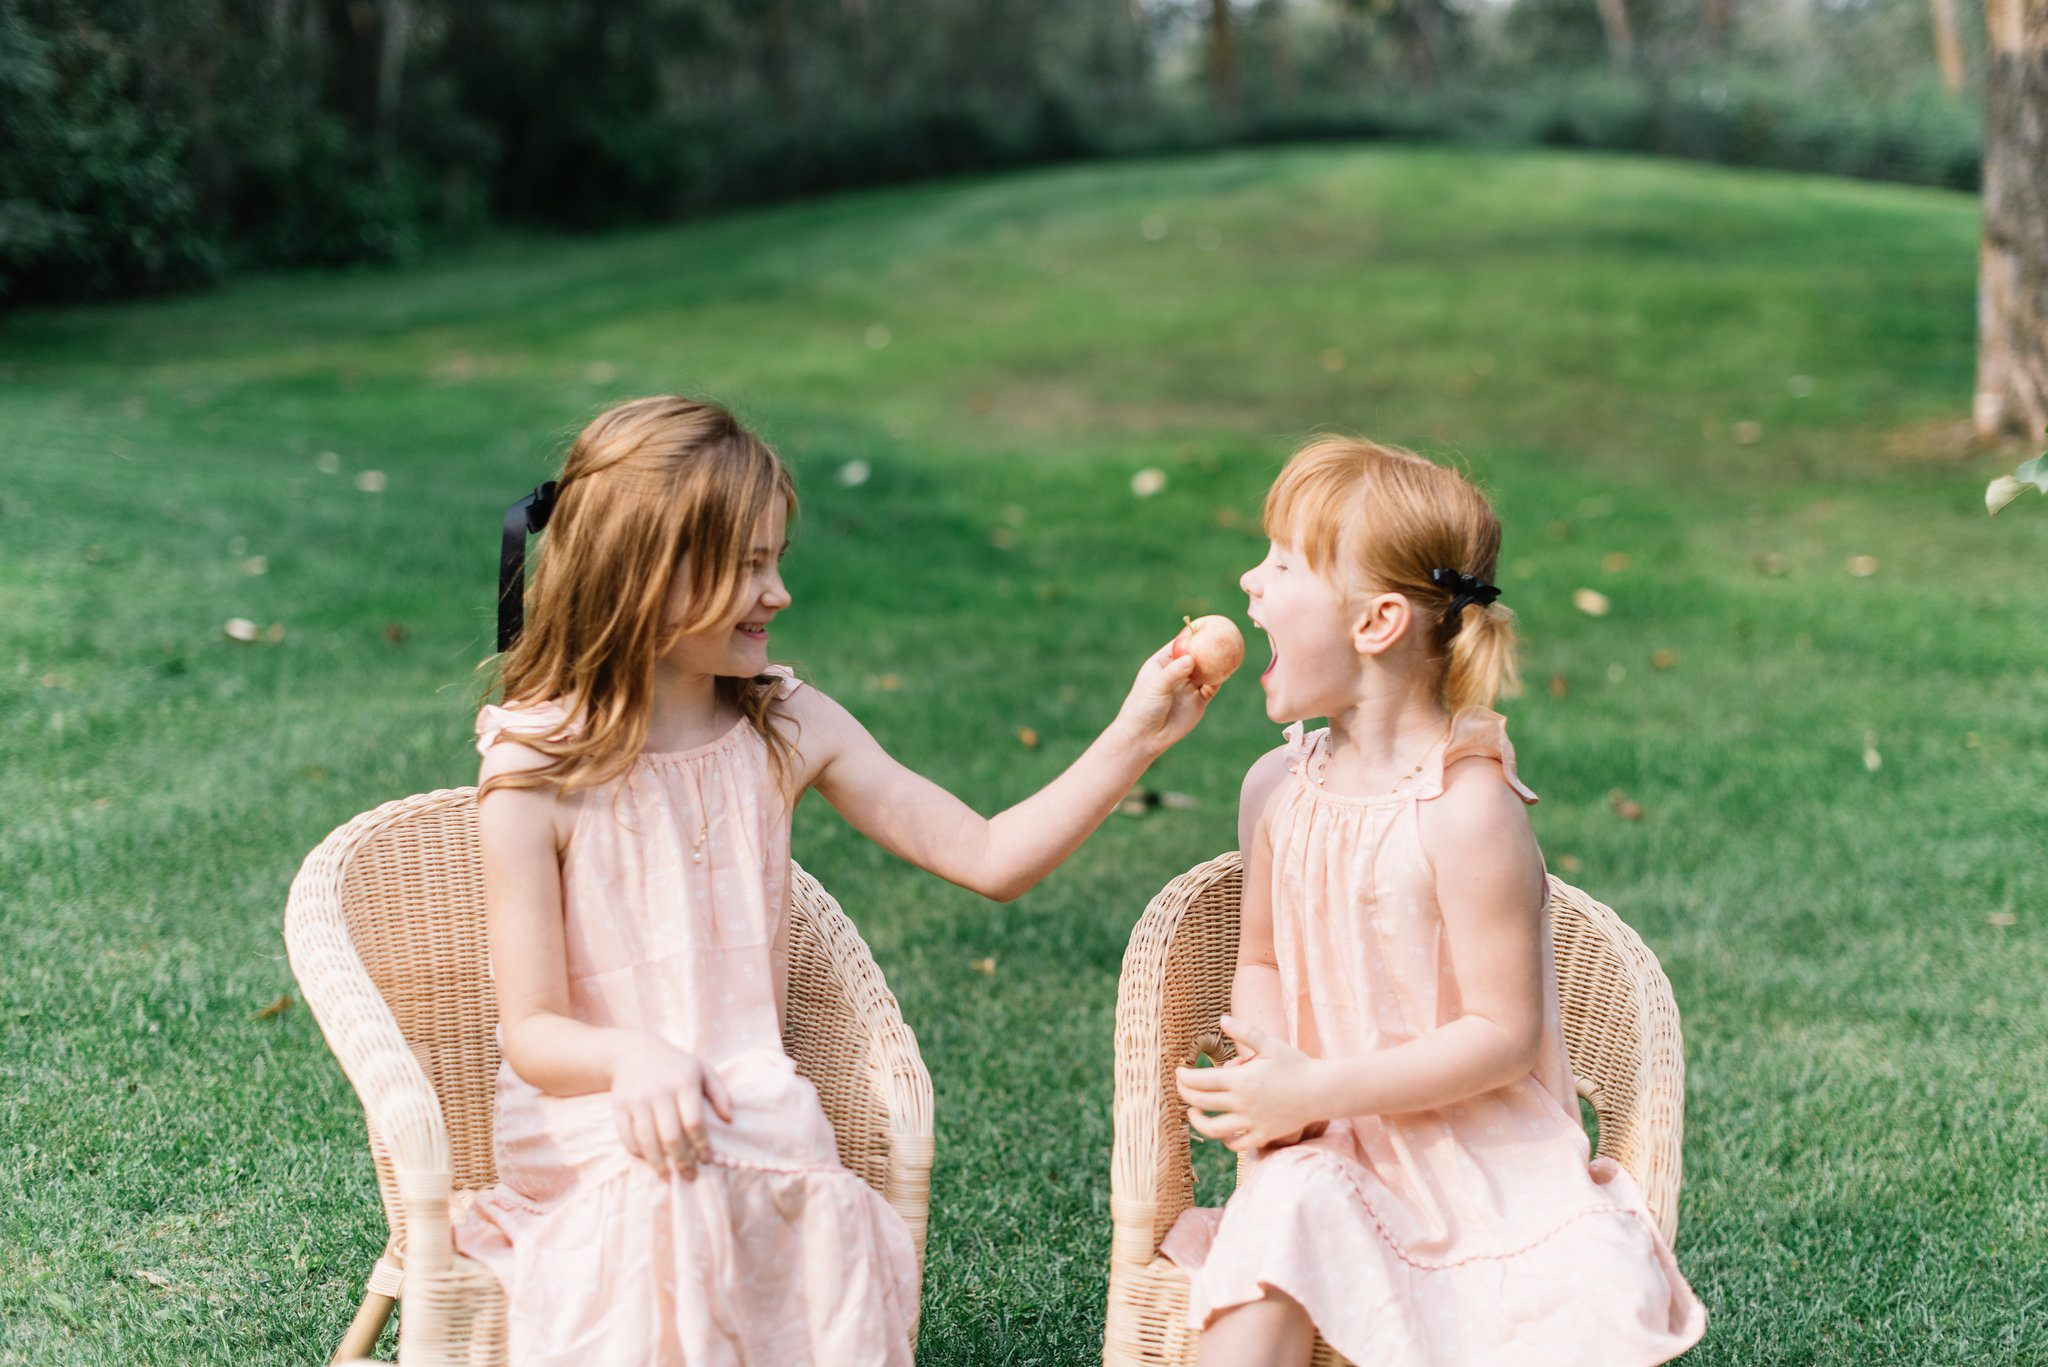 Sisters in matching summer dresses